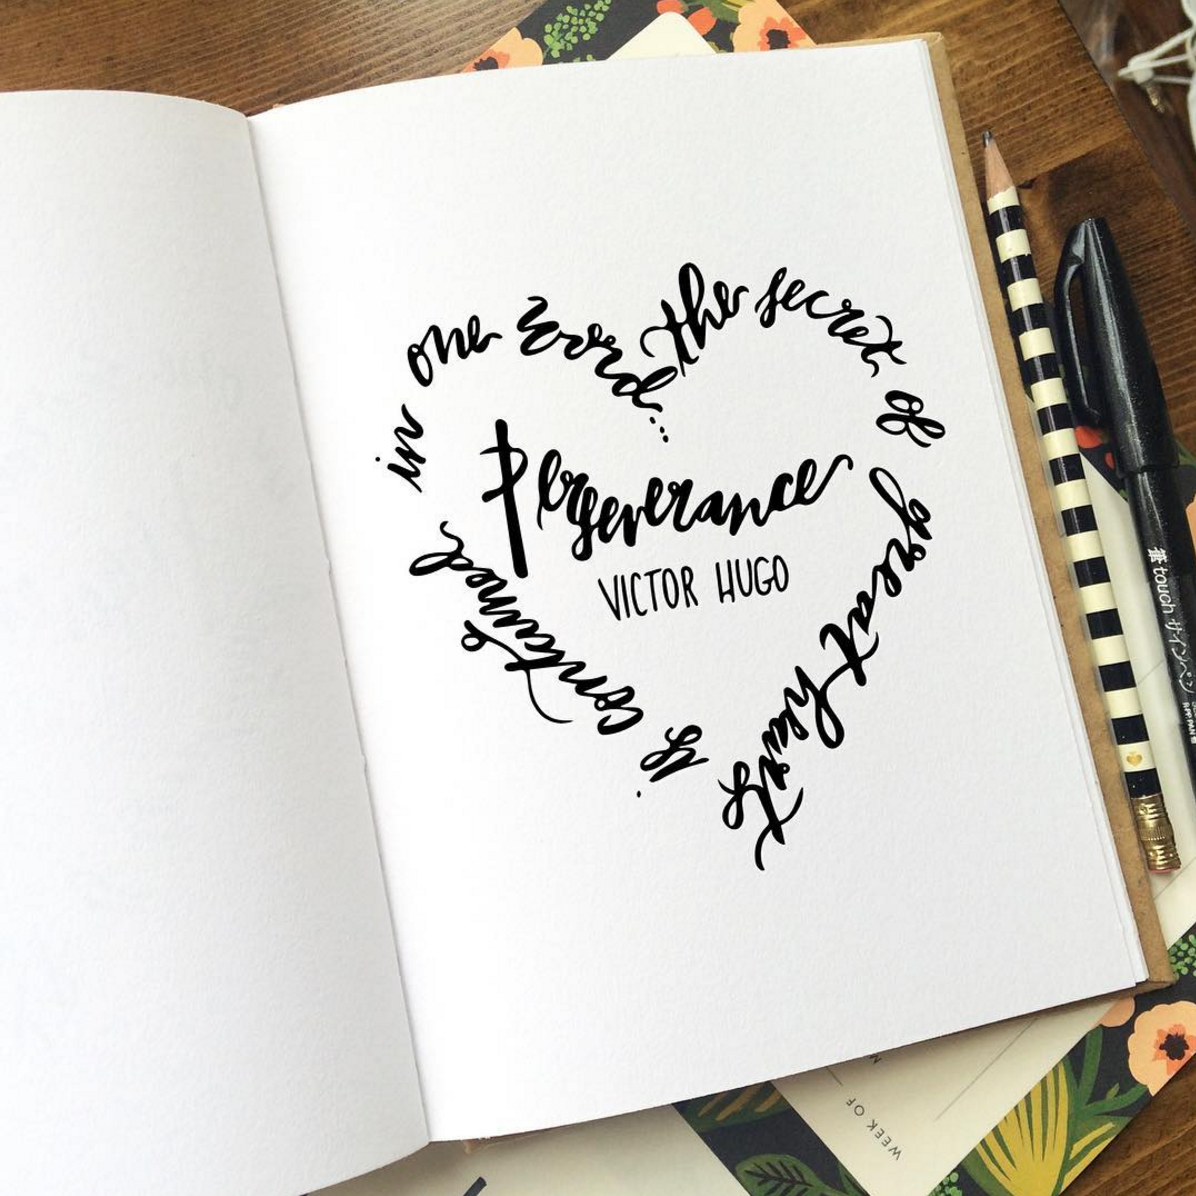 Lettering example of quote by Victor Hugo in the shape of a heart